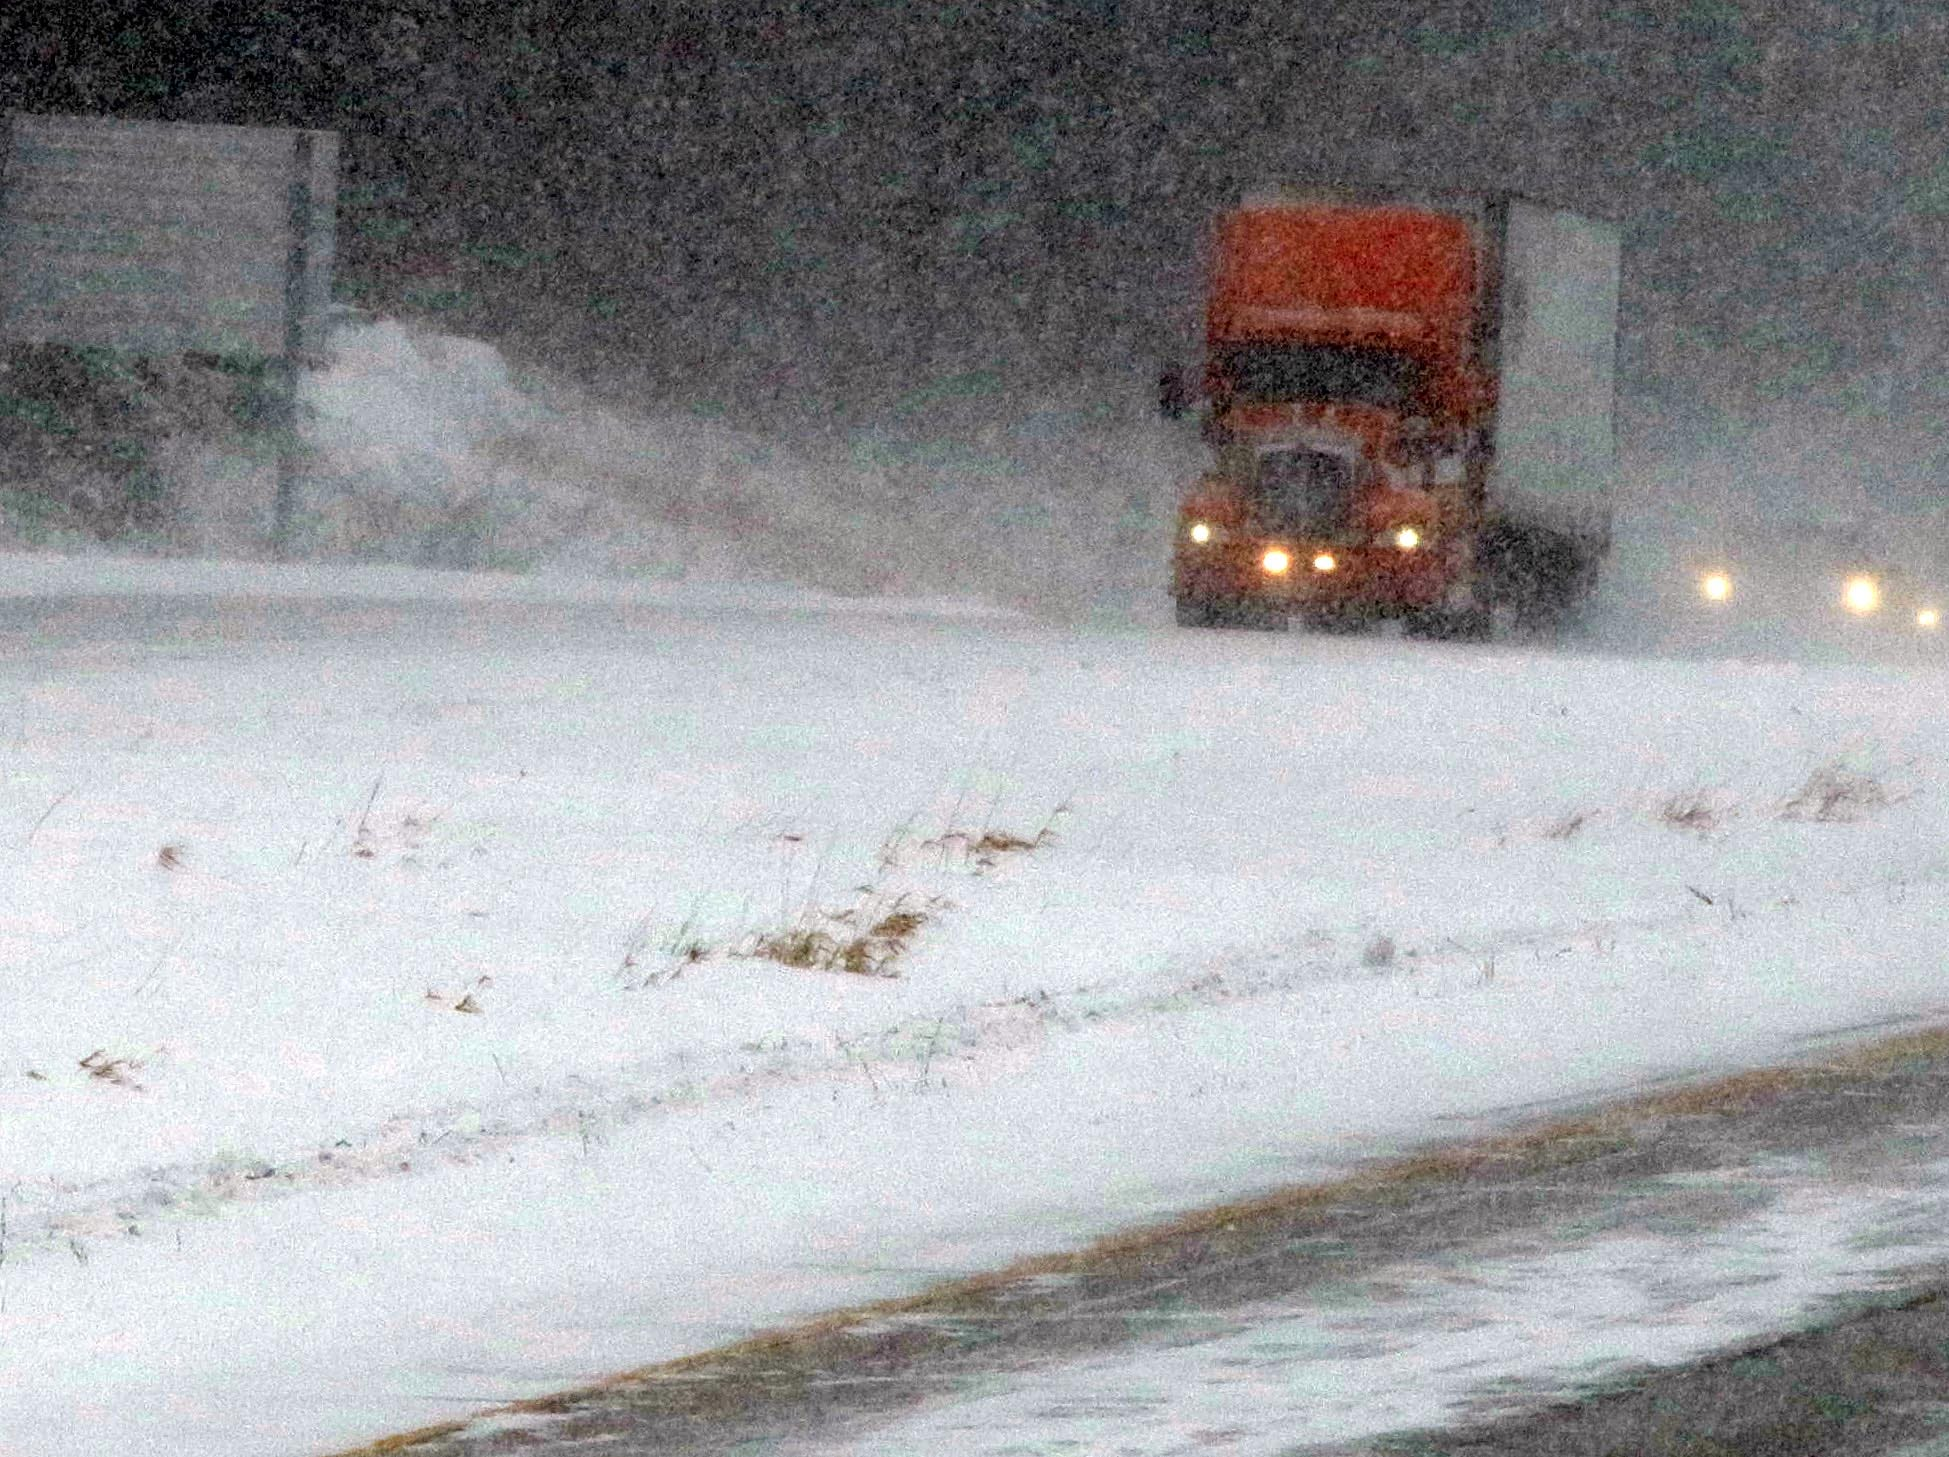 Traffic goes northbound on Interstate 43, south of the state Highway 42 exit, Monday, Jan. 28, 2019, in Sheboygan, Wis. According to Sheboygan County Sheriff Cory Roesler, due to the many closures of businesses and schools, incidents have been kept to a minimum.